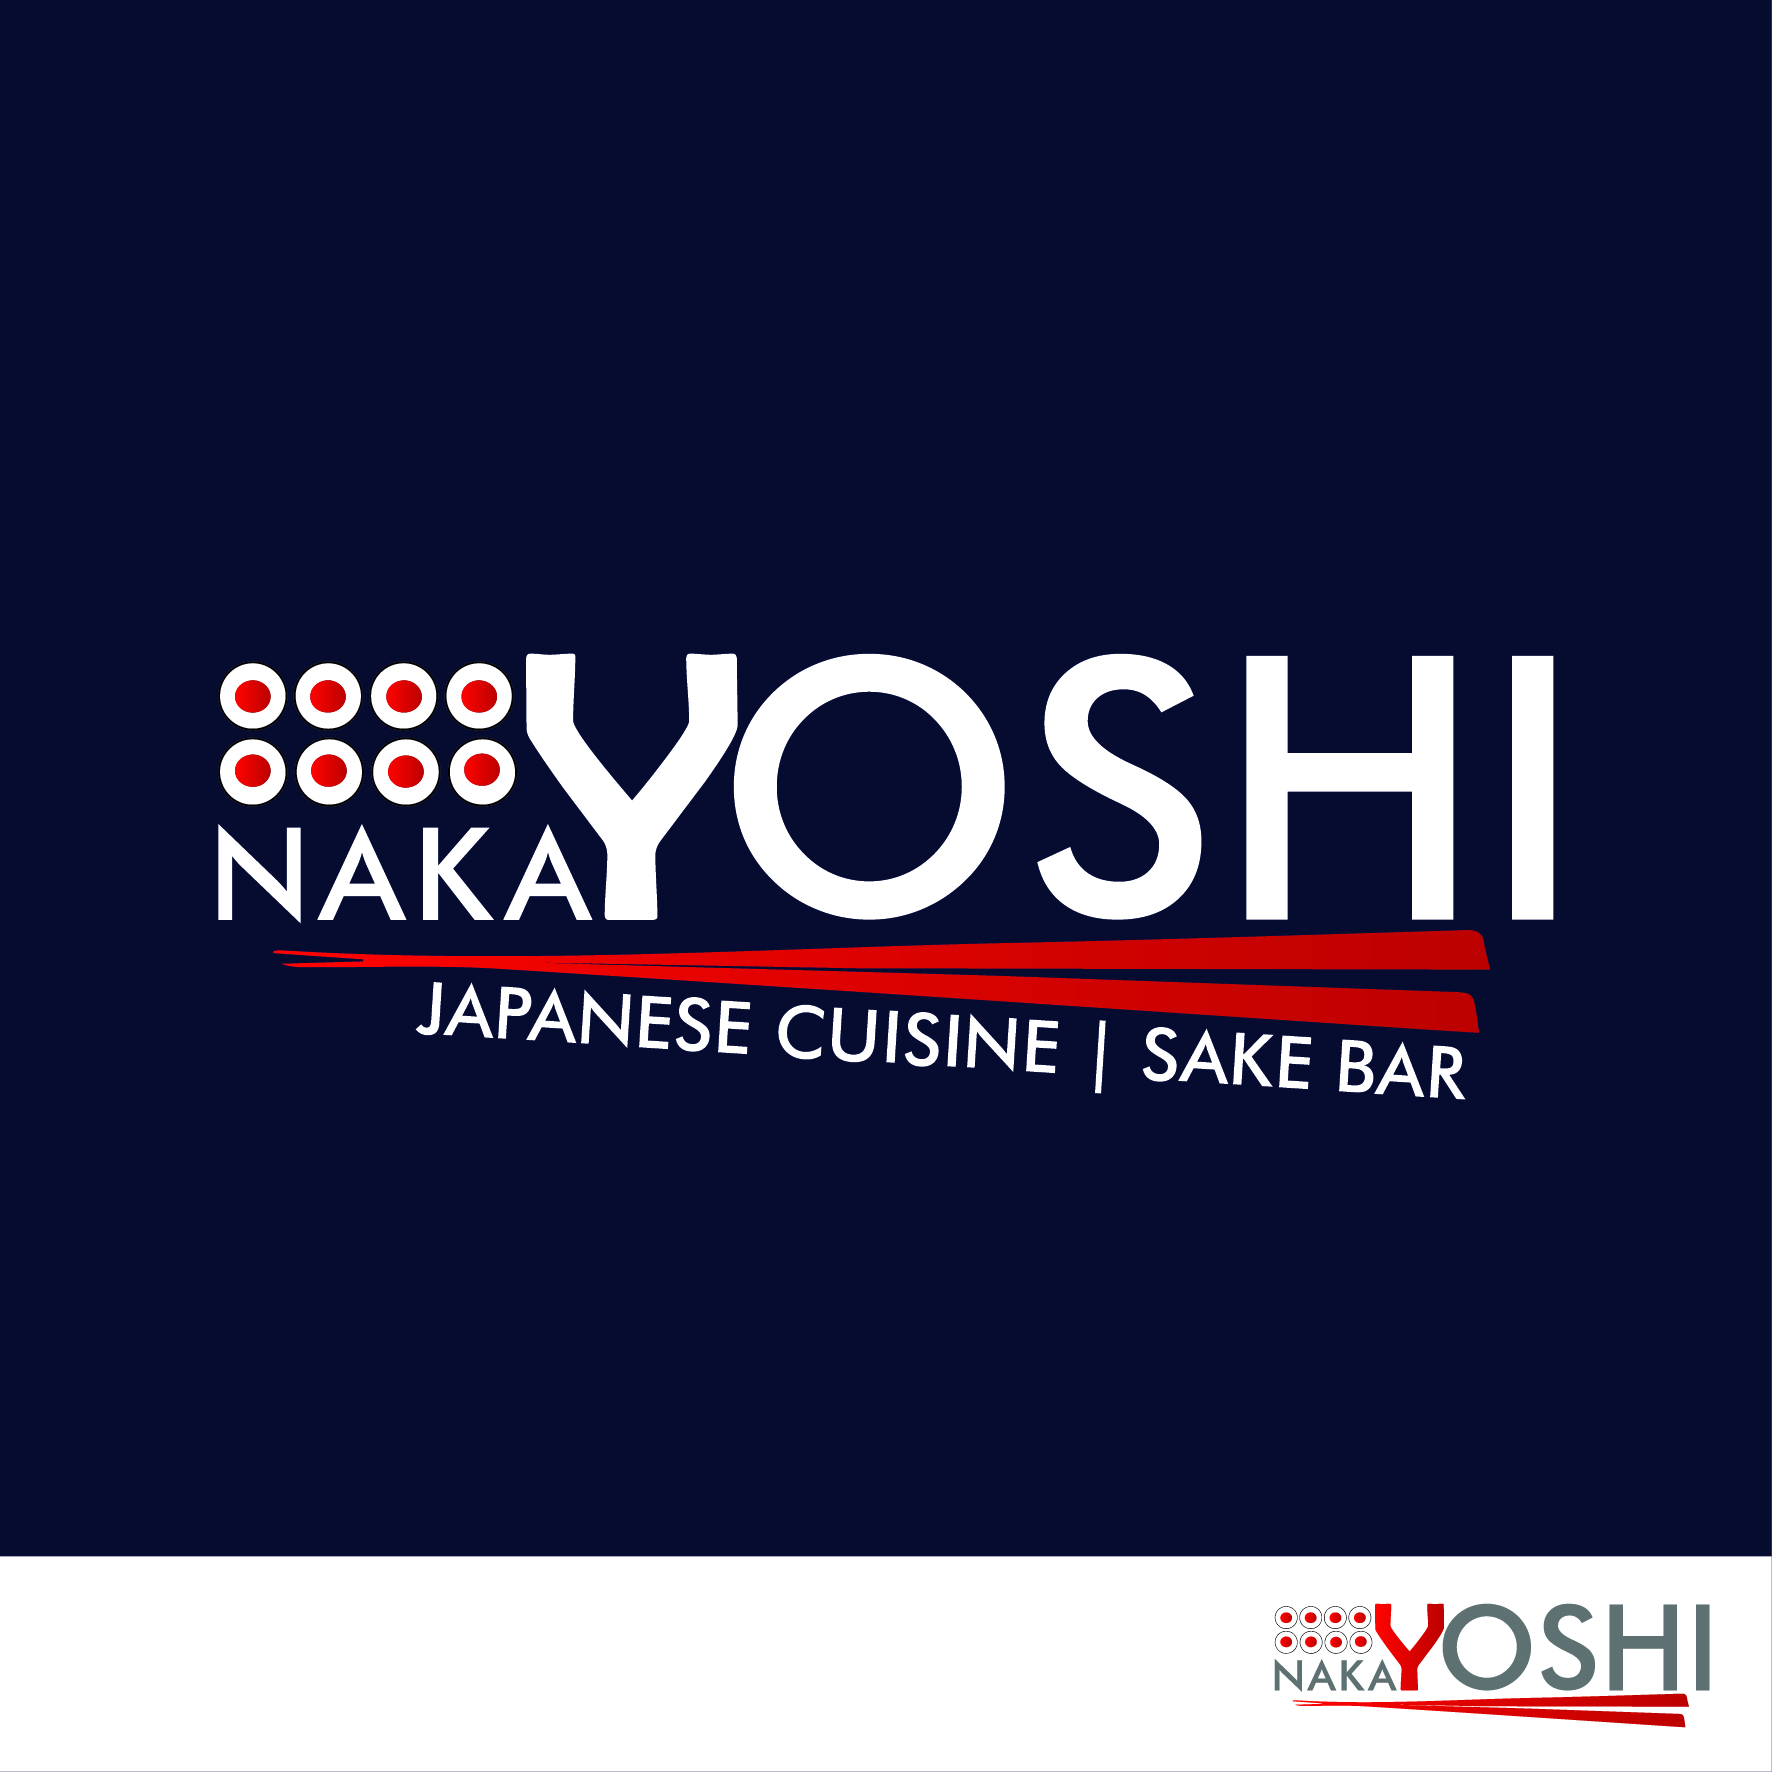 Logo Design by nTia - Entry No. 10 in the Logo Design Contest Imaginative Logo Design for NAKAYOSHI.